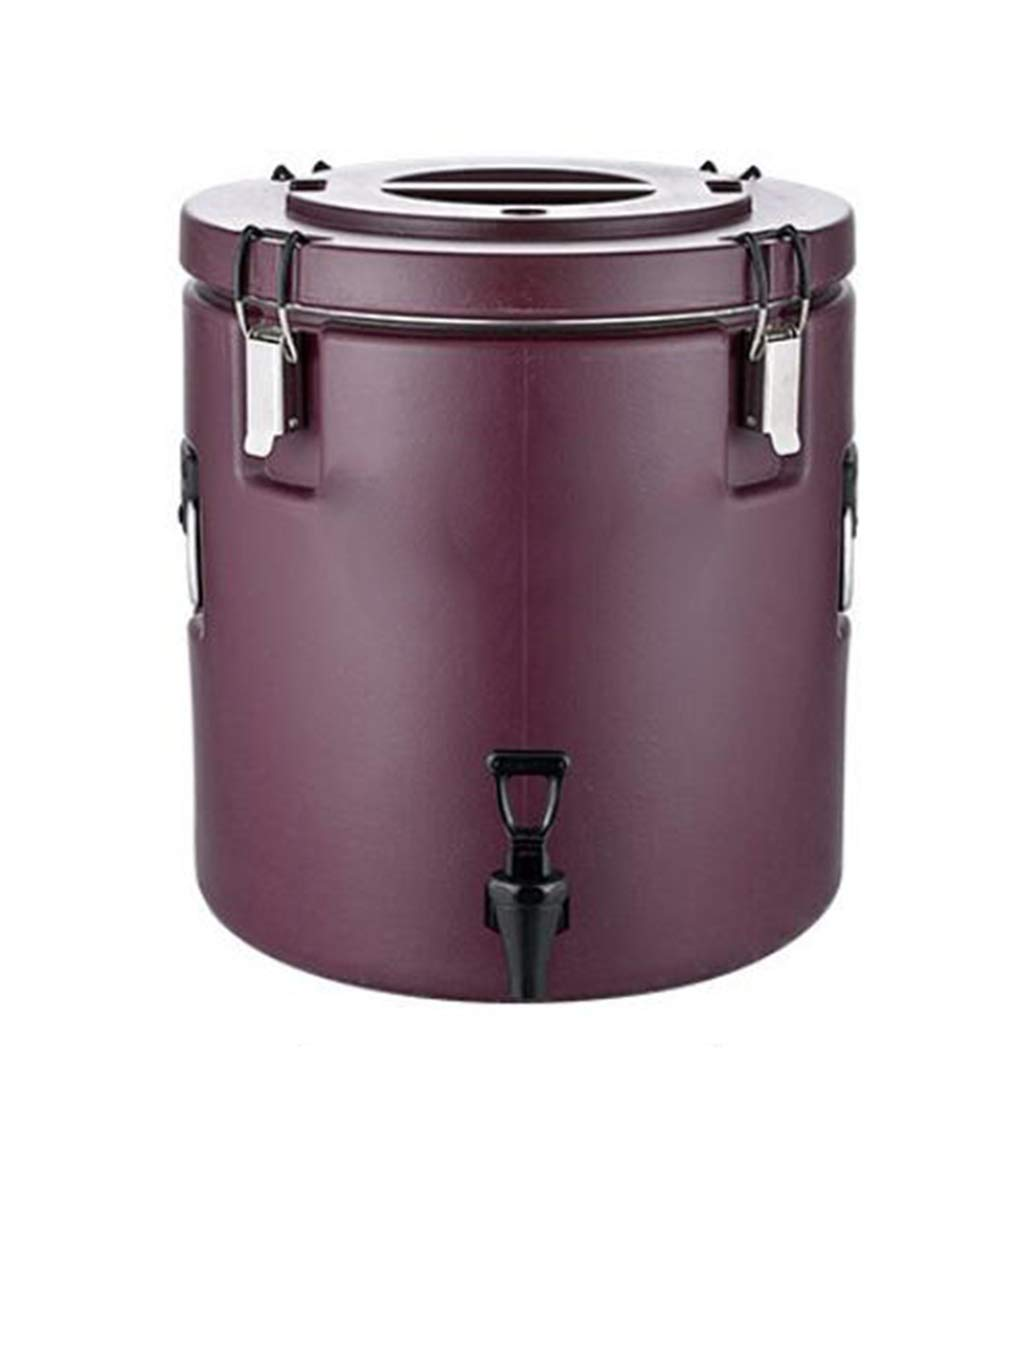 Color : Brown, Size : 20L GZKXUE Stainless steel hot water dispenser Large capacity milk tea cooler Commercial double insulation rice bucket for coffee shop 20L-60L